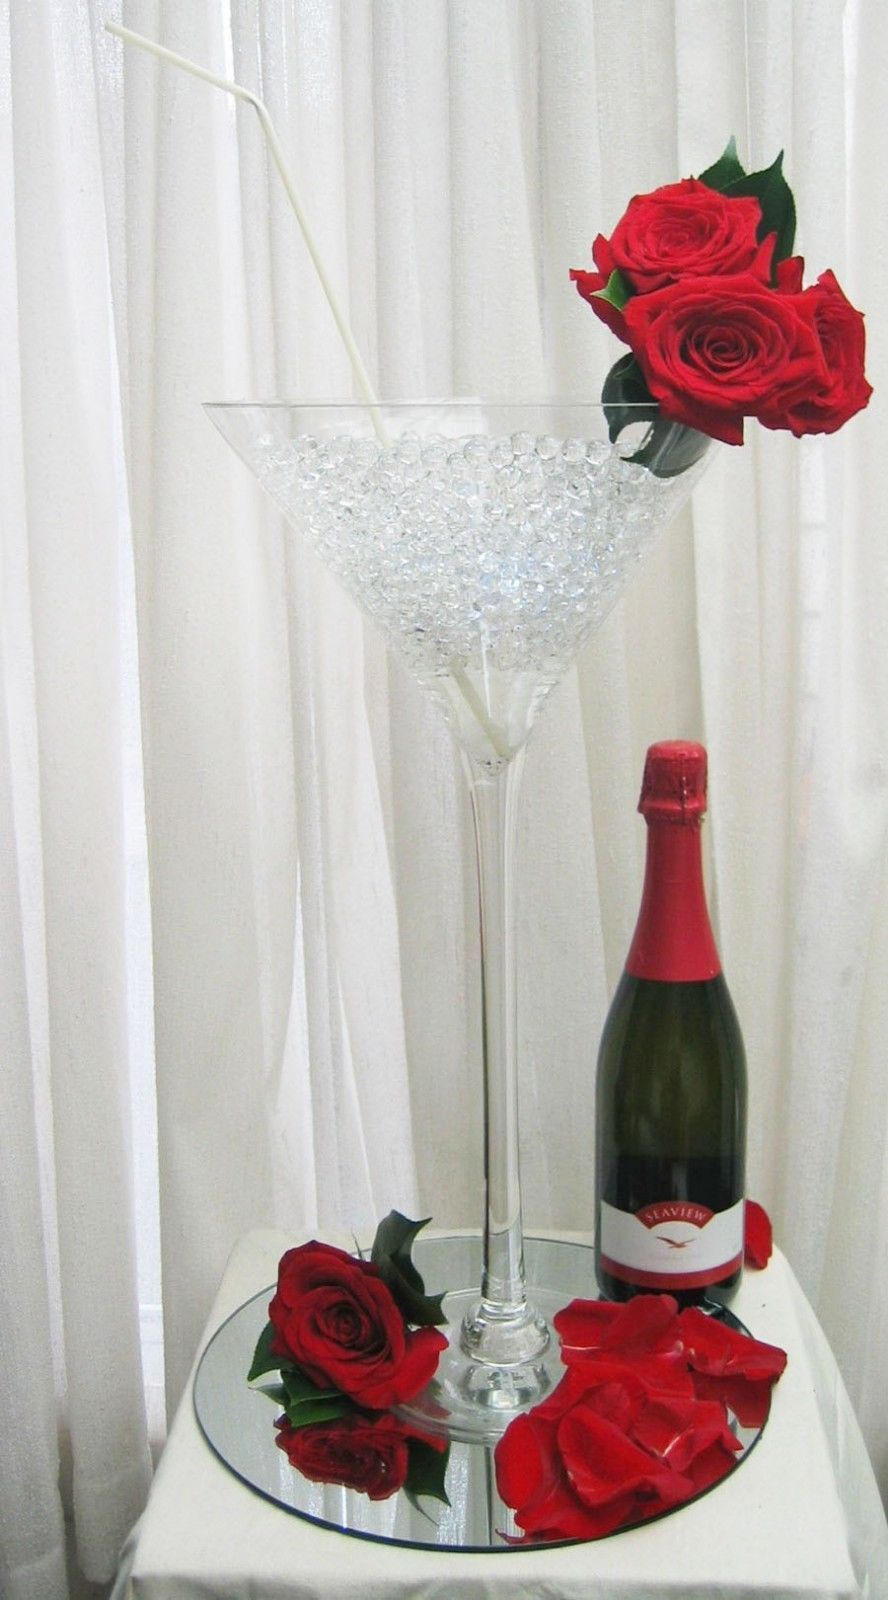 Martini glass vase 16 20 23 wedding centerpiece tall giant beautiful elegant giant vase in the shape of a martini glass is perfect as a centerpiece for weddings and other special occasions vase has an reviewsmspy